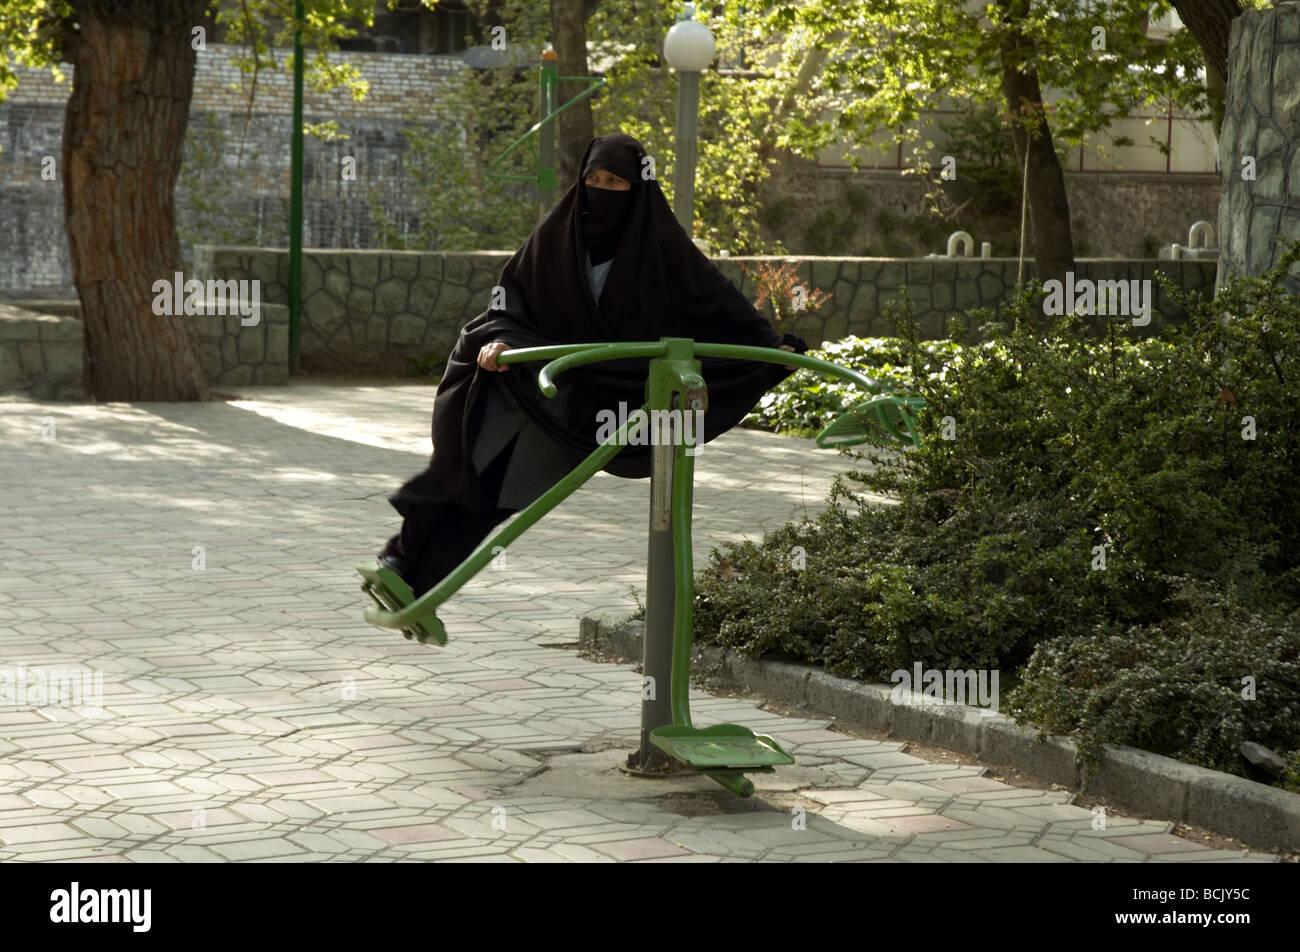 Woman in Burqa on an exercise machine in Tehran - Stock Image